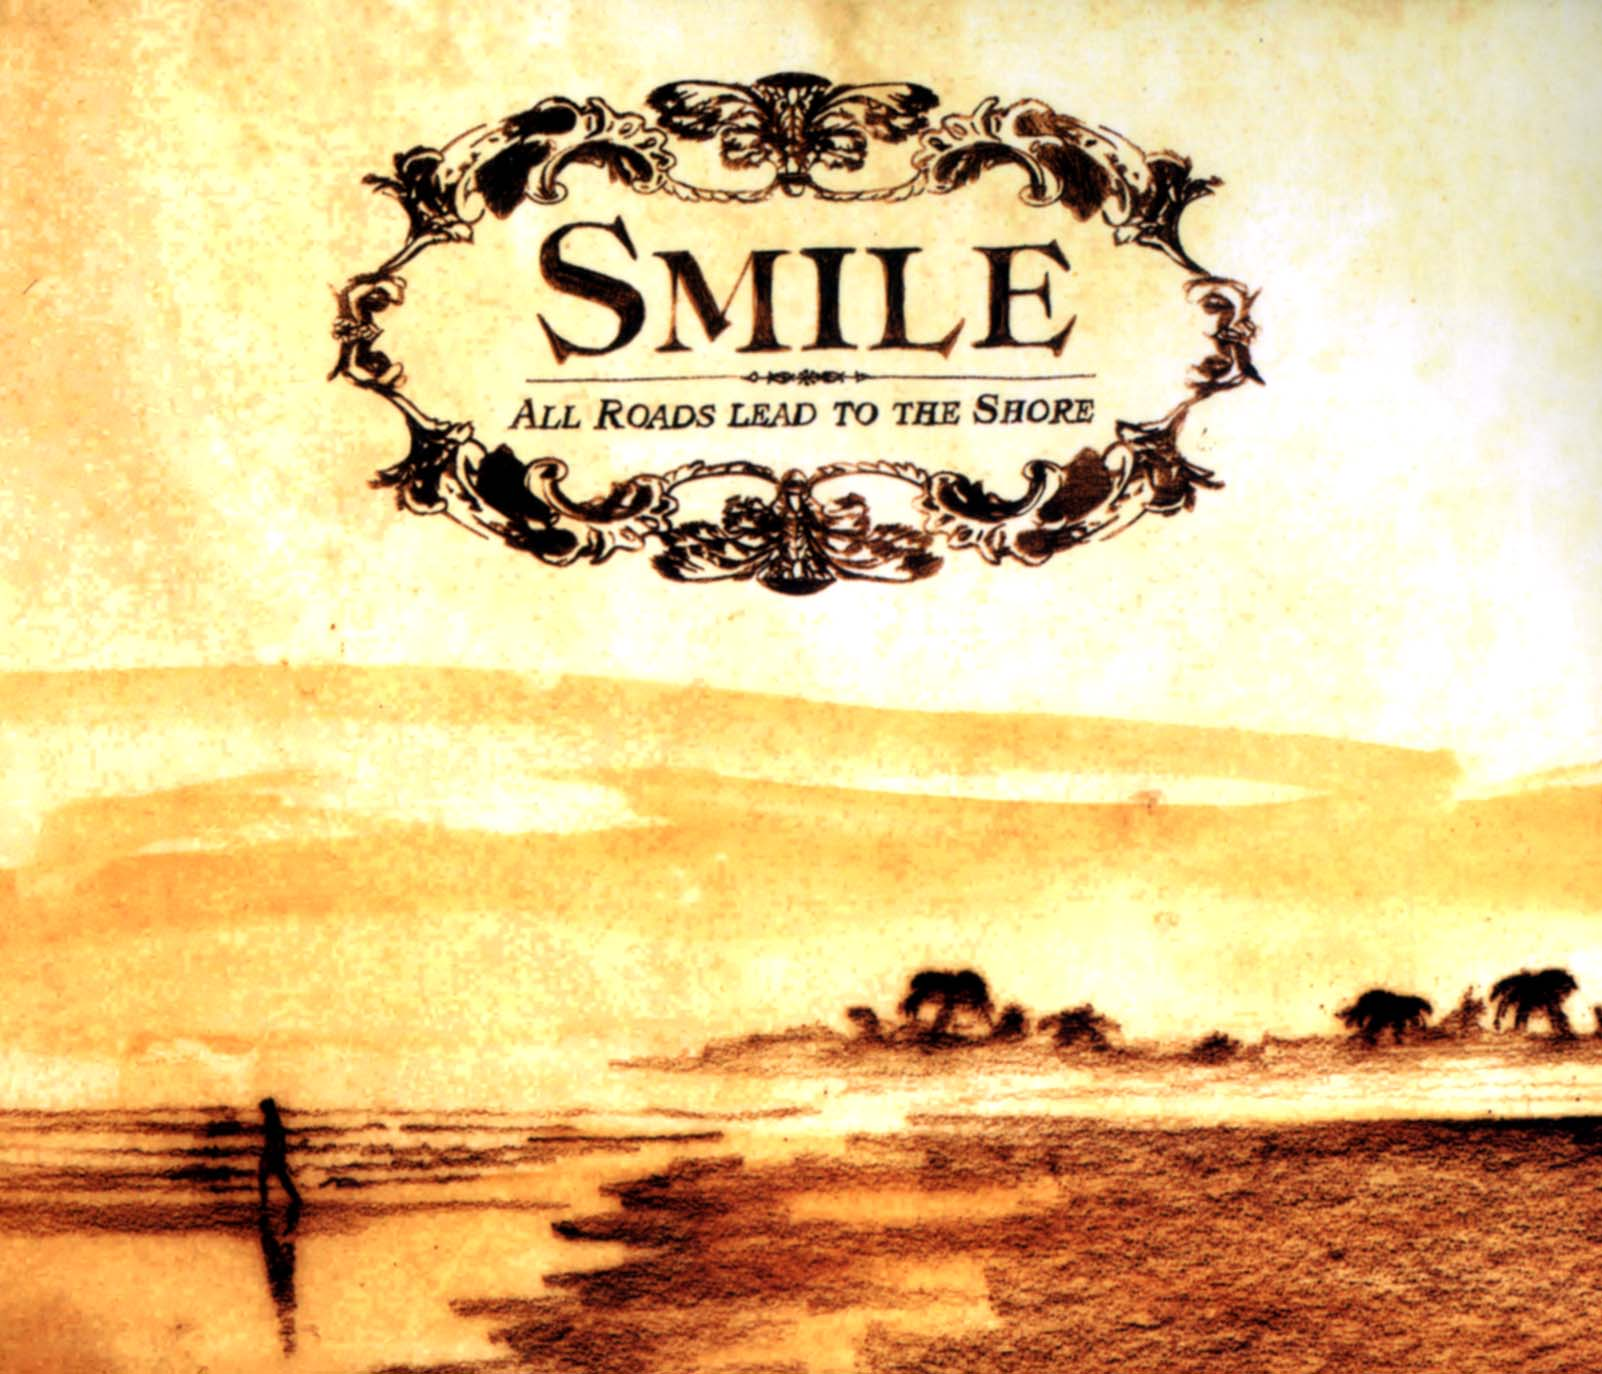 Smile: All Roads Lead to the Shore